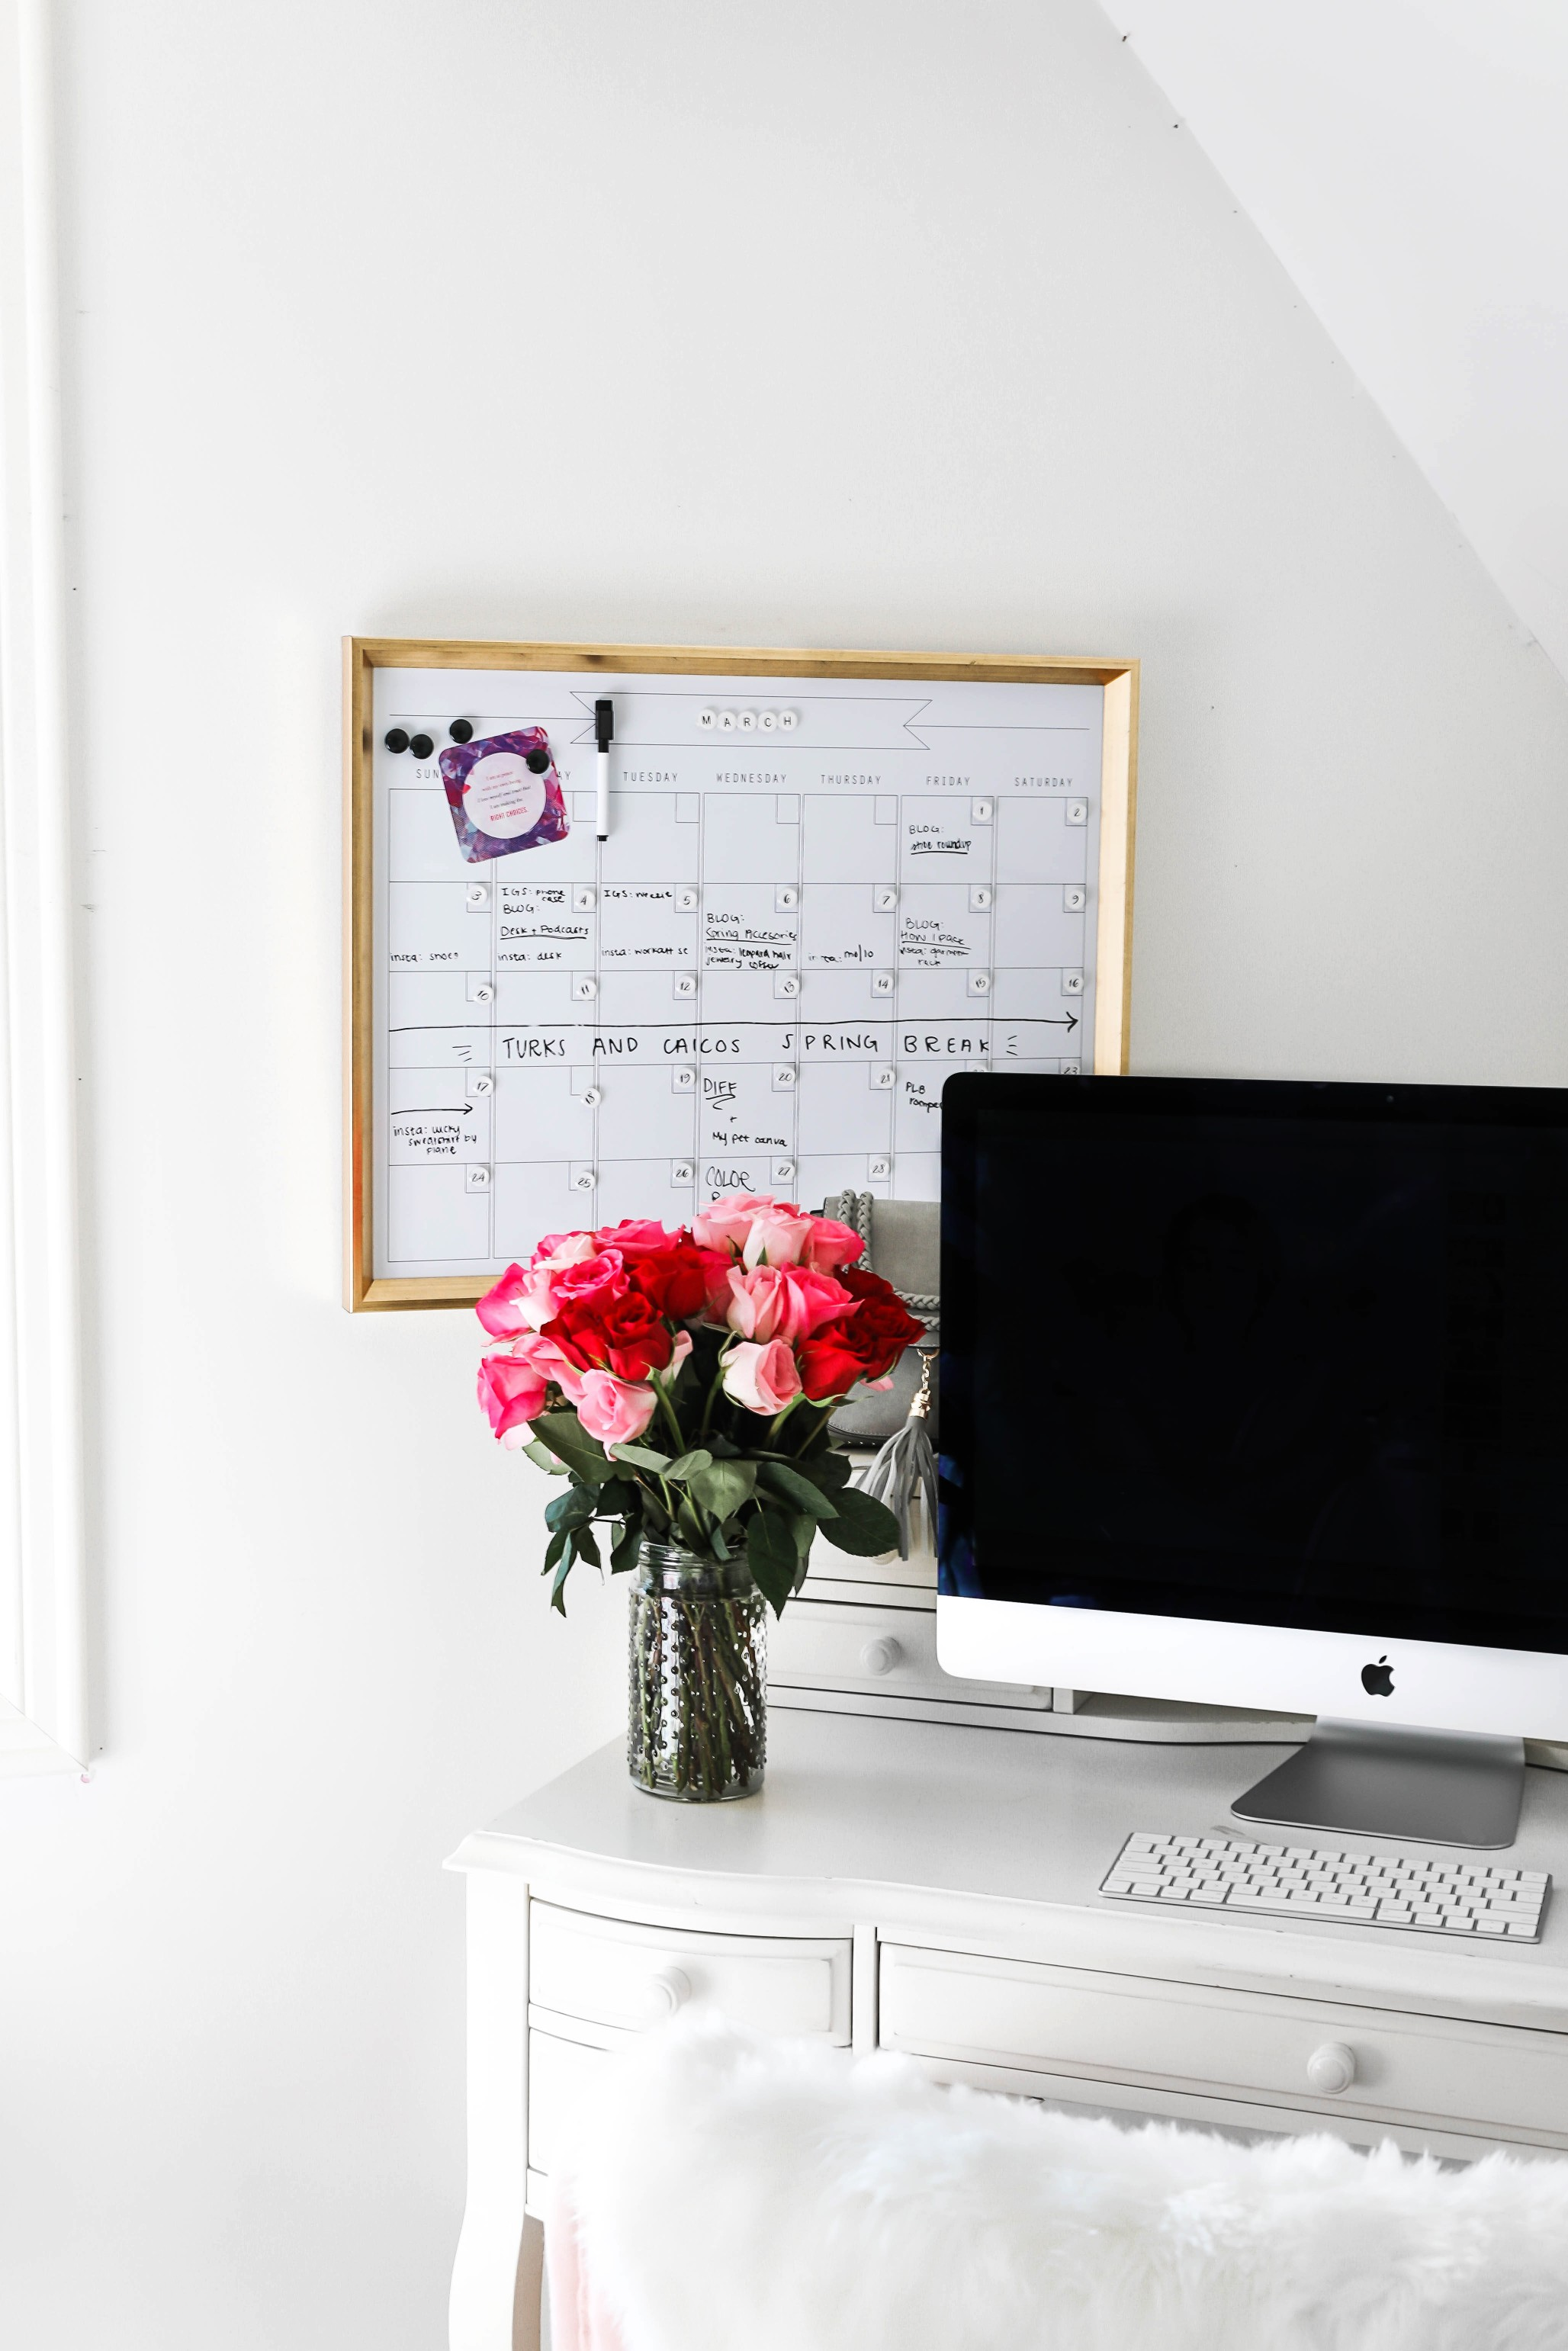 Amazon haul life hacks gold dry erase calendar lifestyle fashion blog daily dose of charm lauren lindmark